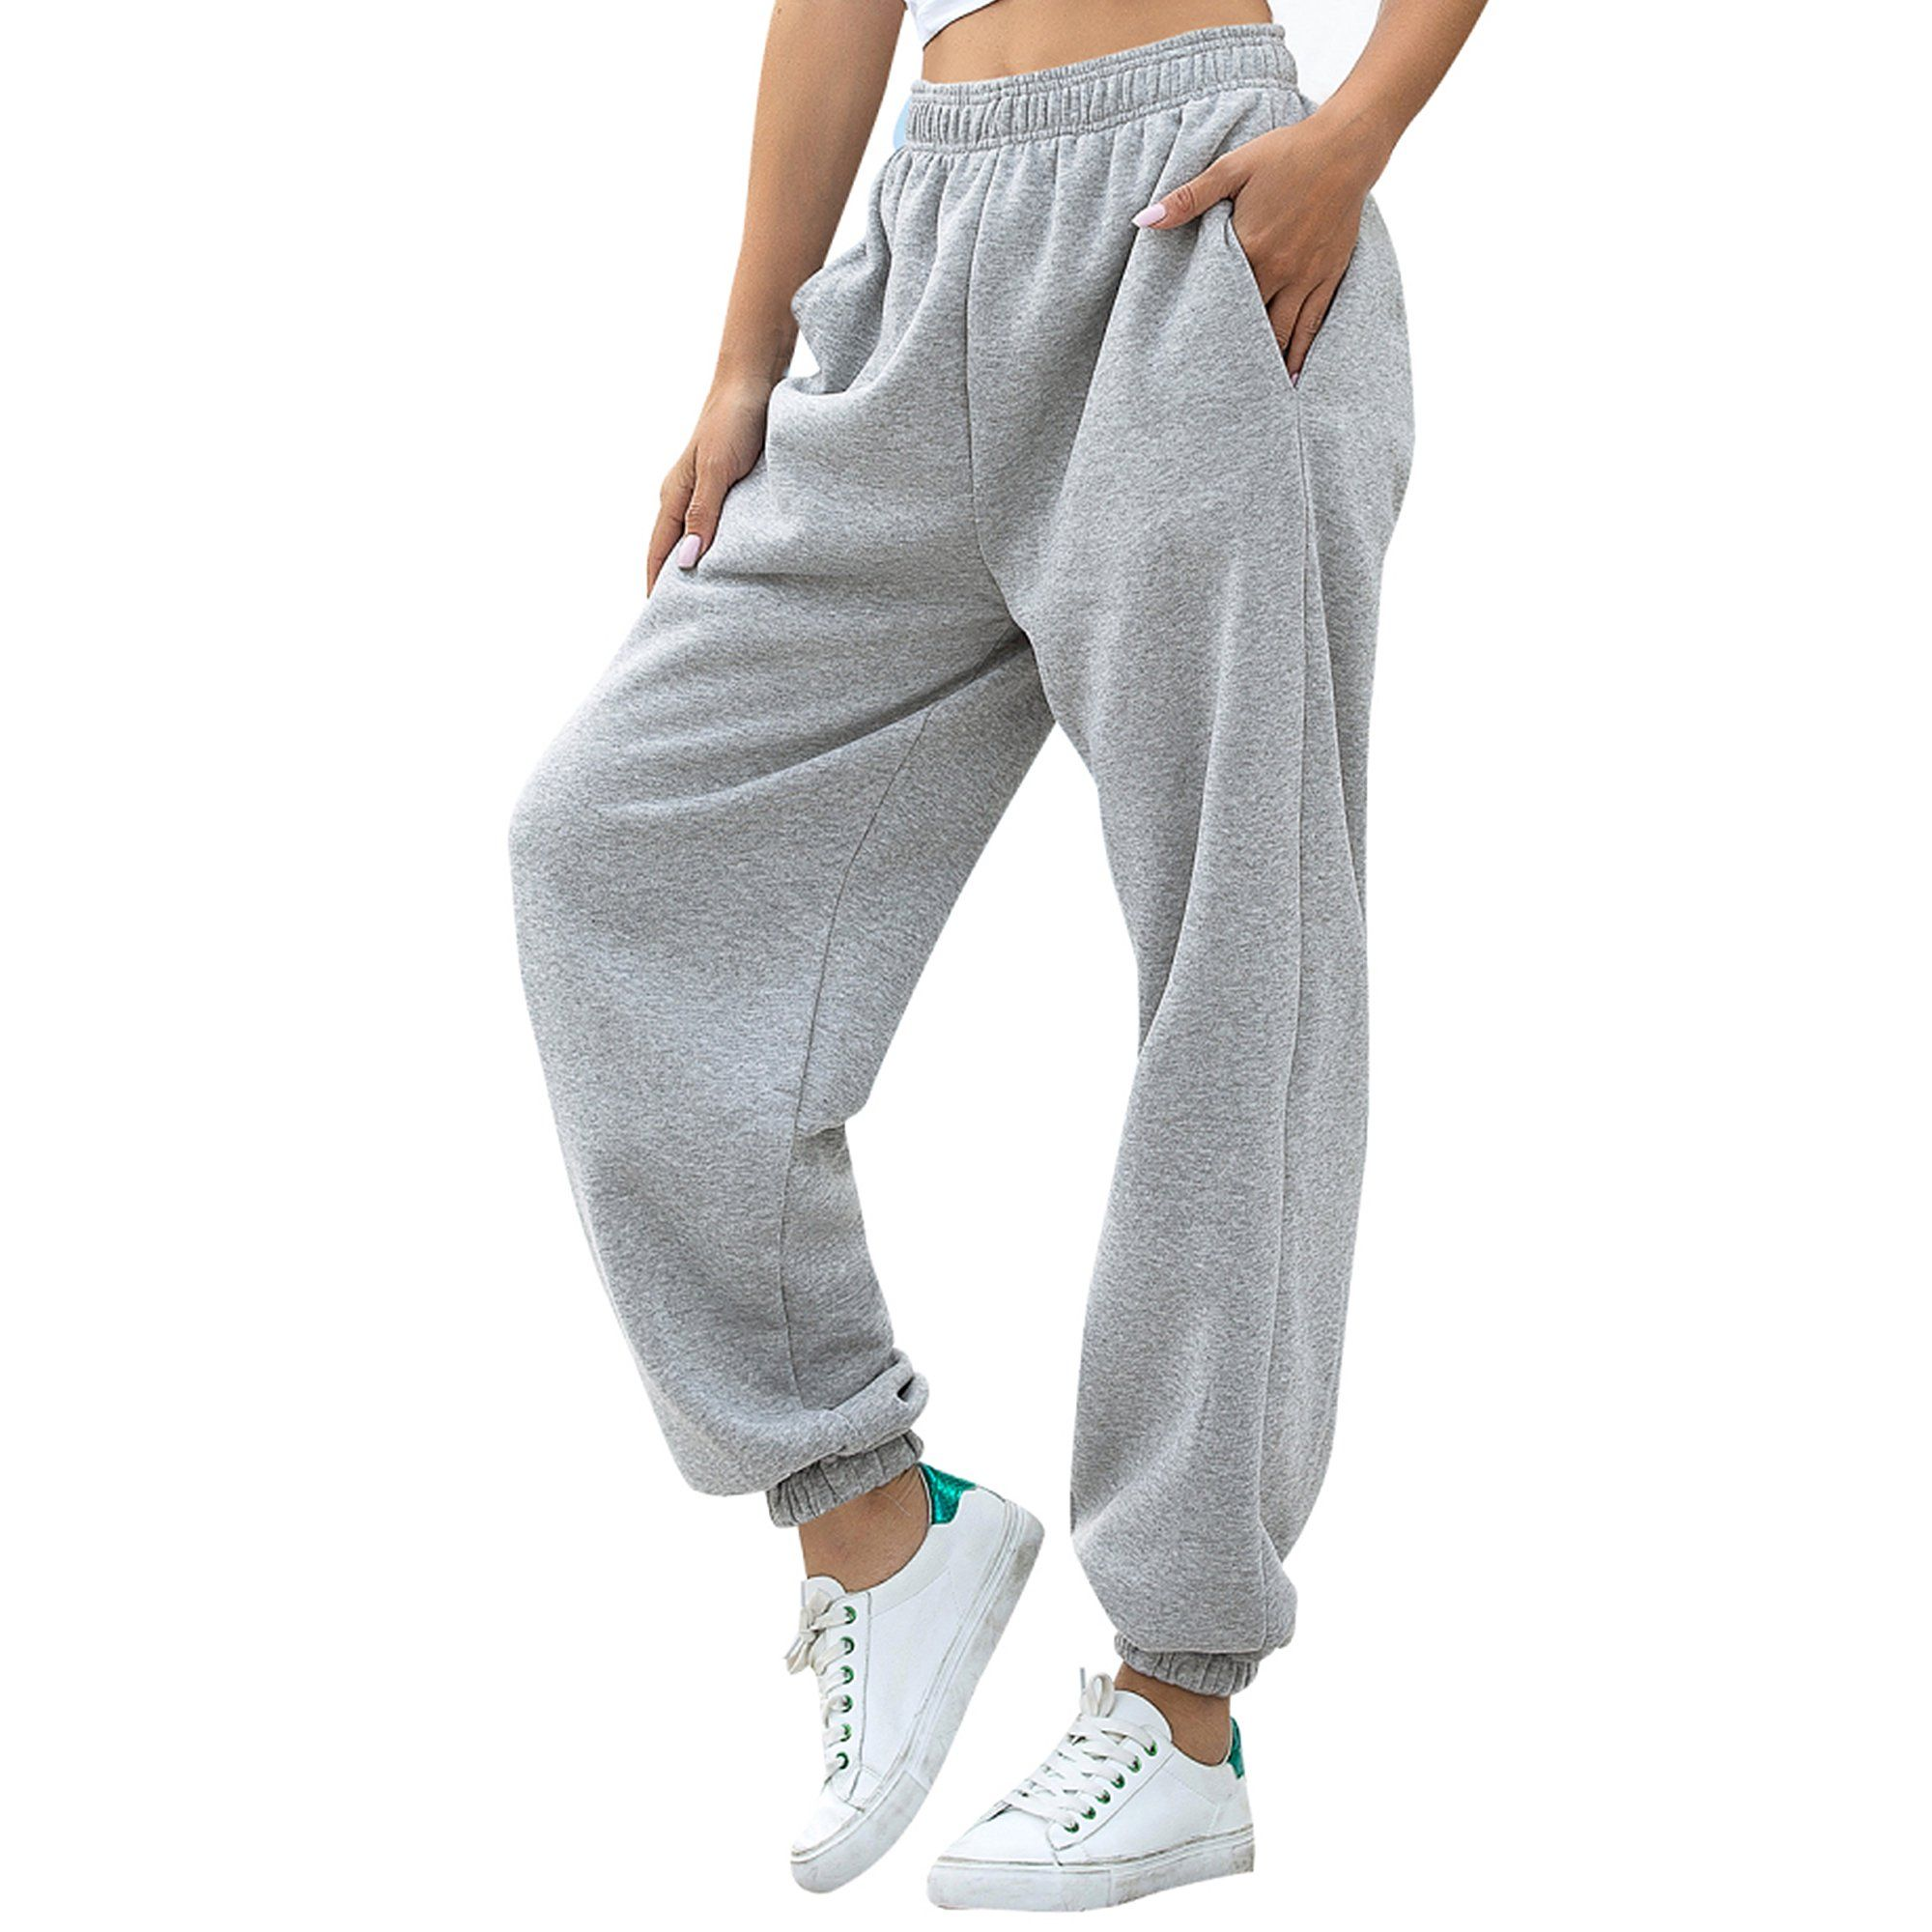 Womens Gym Trouser Casual Fleece Pants Elasticated Ladies Waist Stretchy Joggers